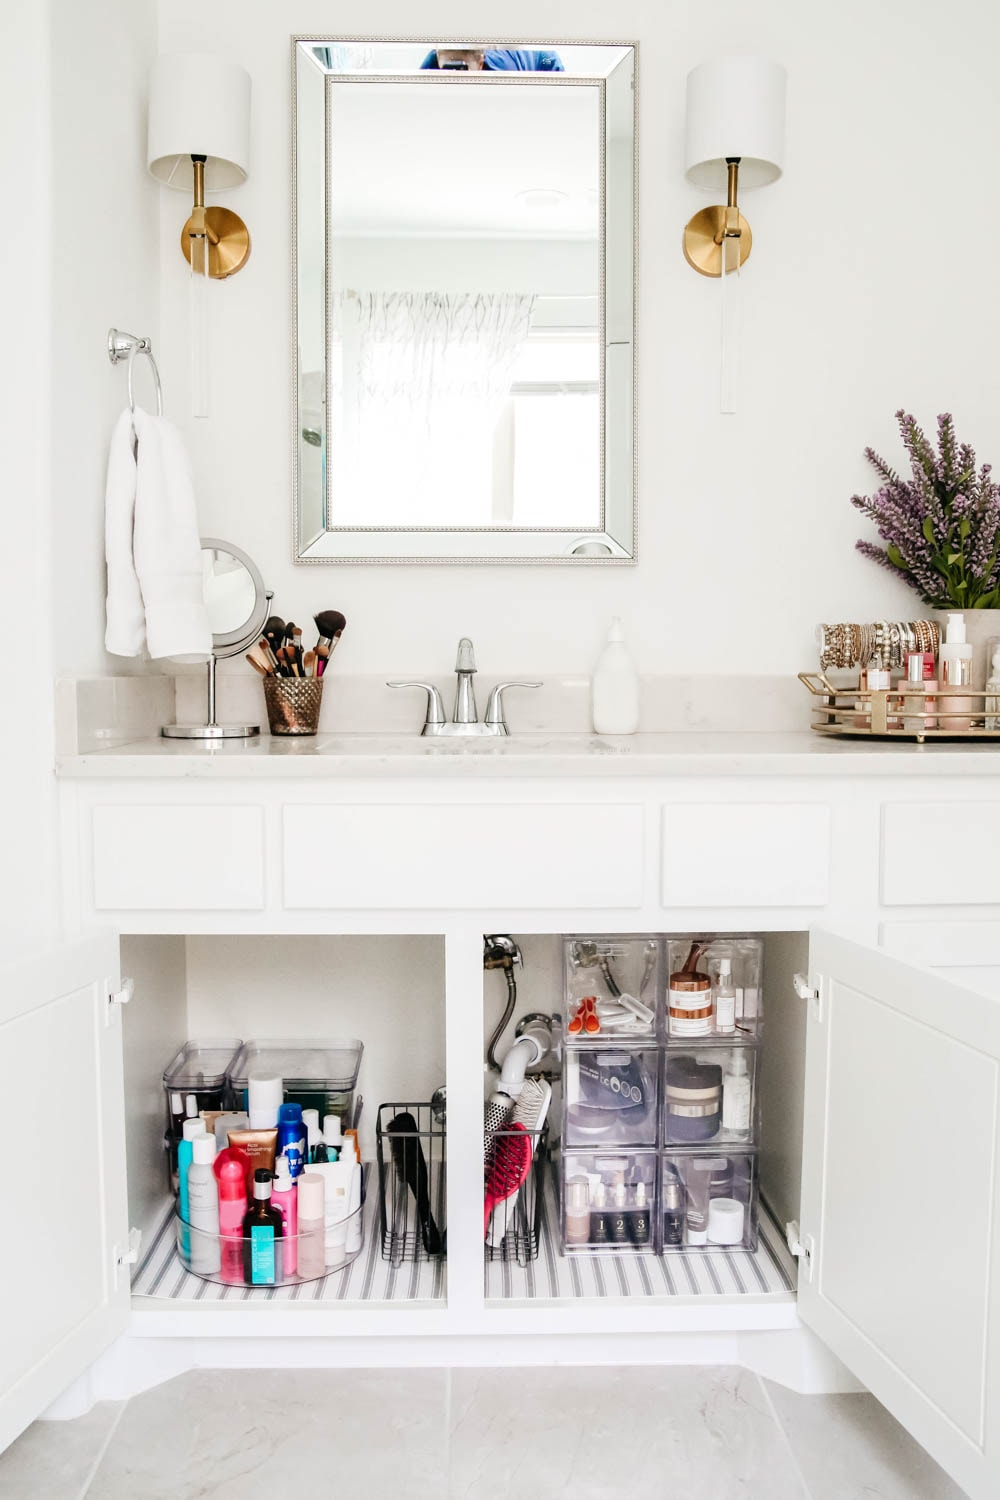 An easy hack to organize your bathroom cabinets and make them easy to clean + maintain to keep the clutter away.